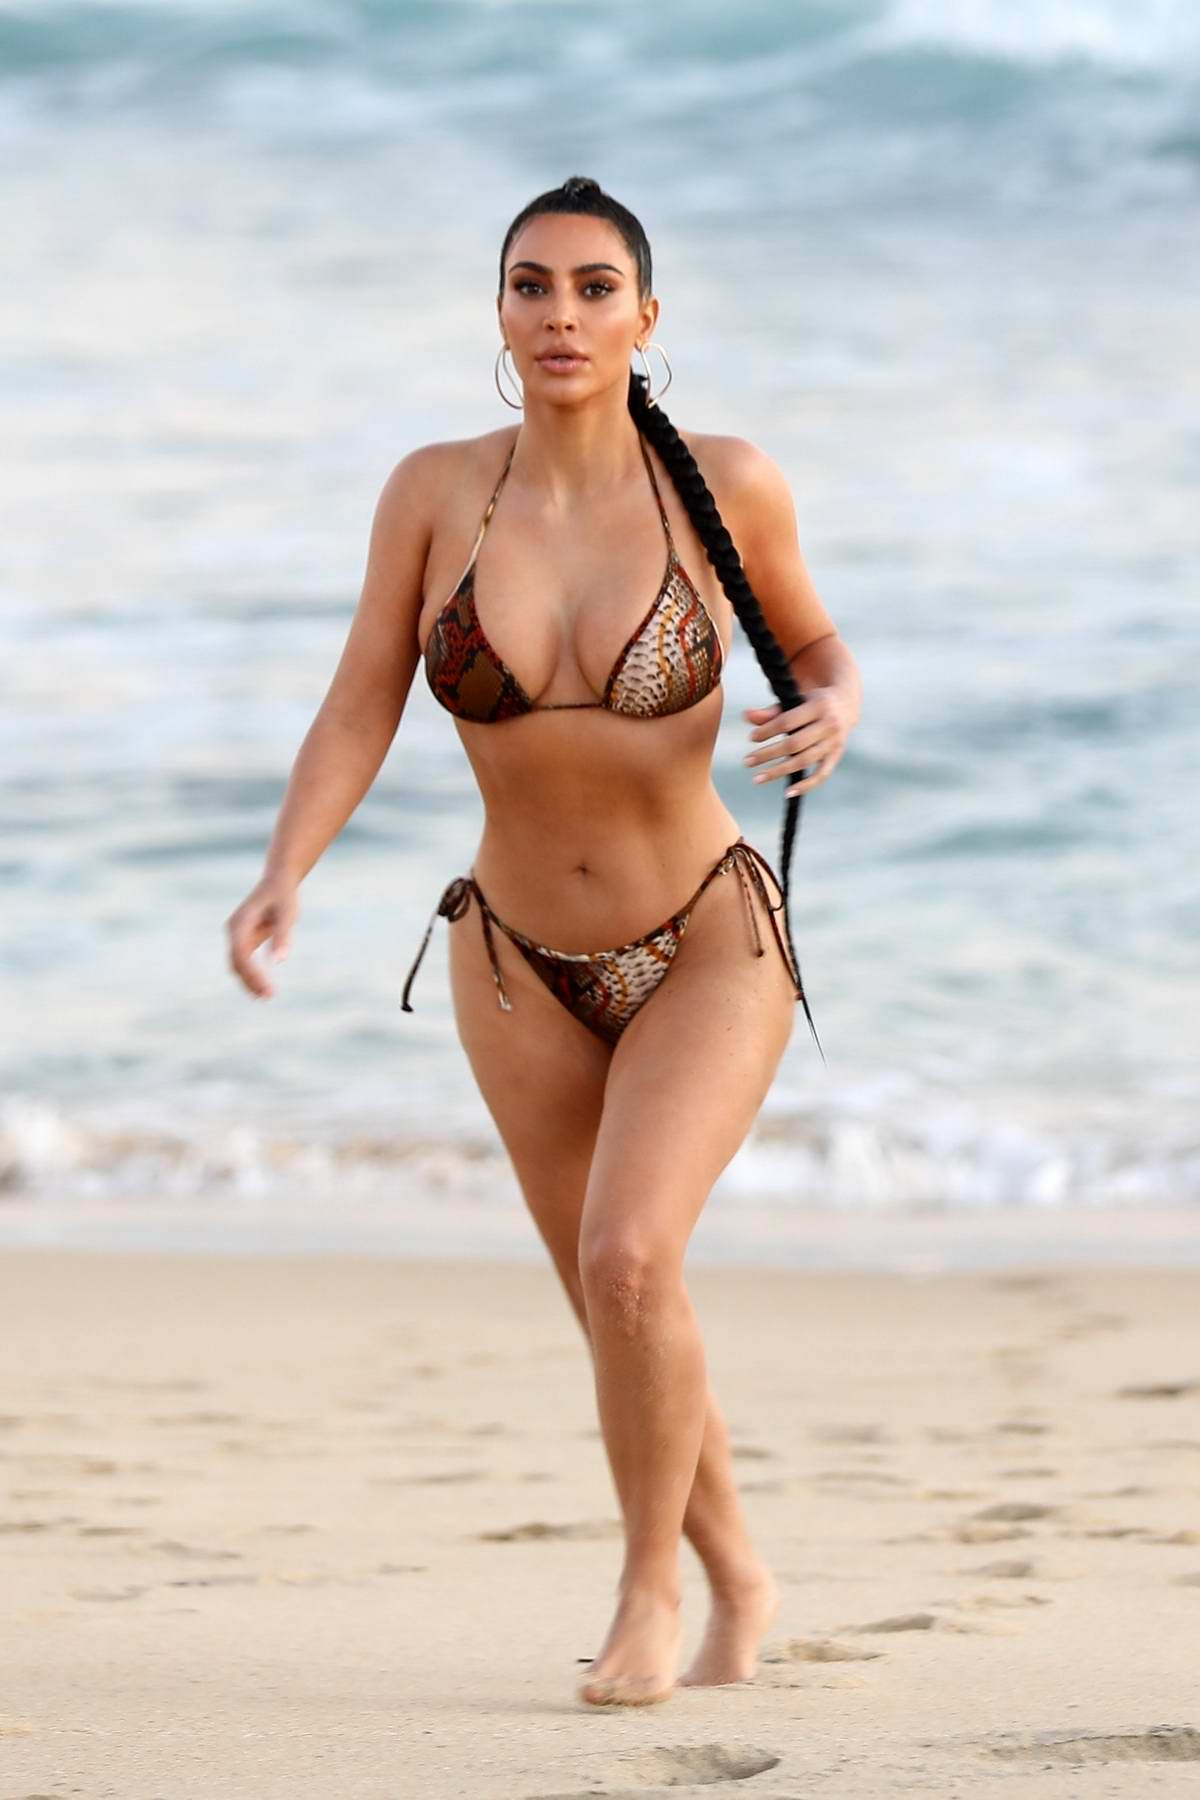 Kim Kardashian shows off her curves in a snakeskin print bikini after filming KUWTK in Malibu, California